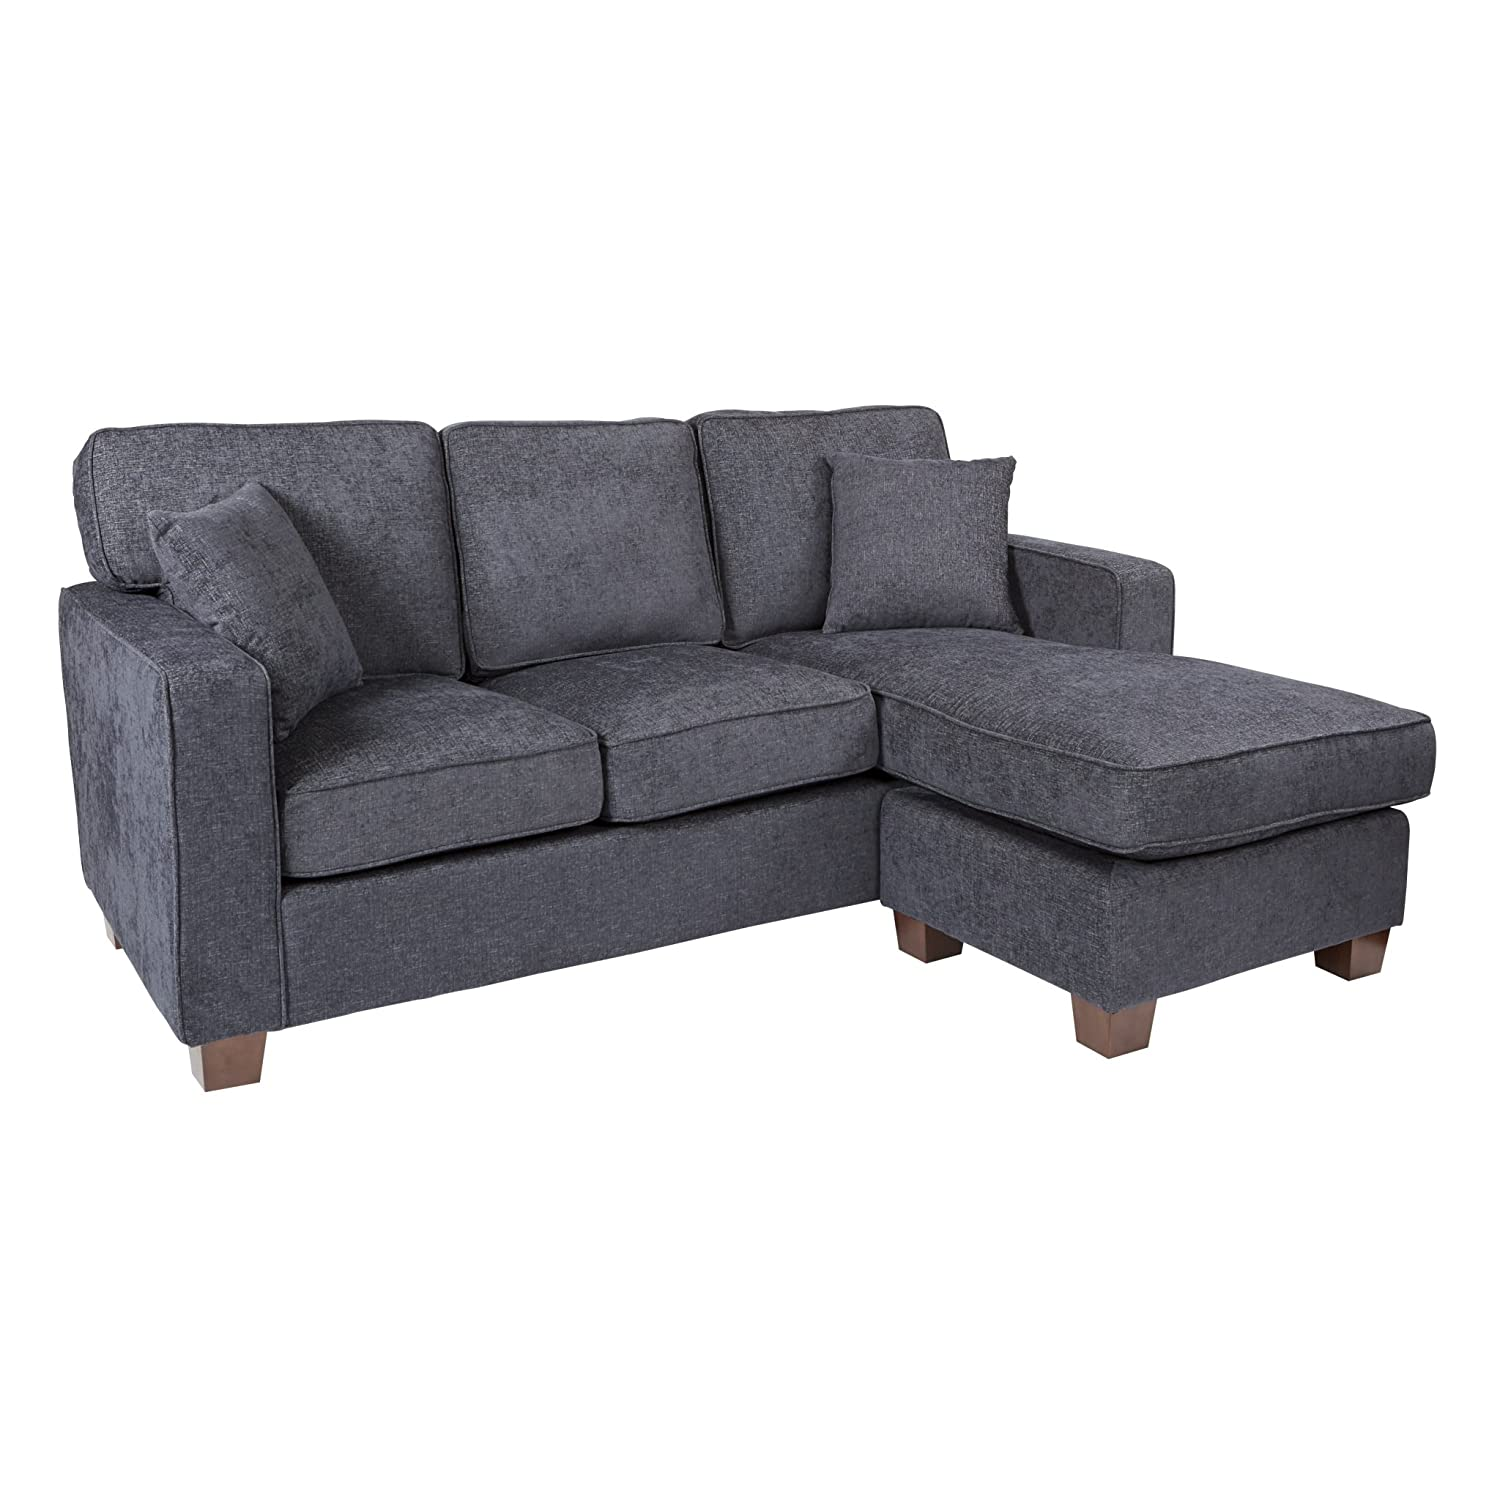 AVE SIX Russell Sectional Sofa with 2 Pillows and Coffee Finished Legs, Navy Fabric